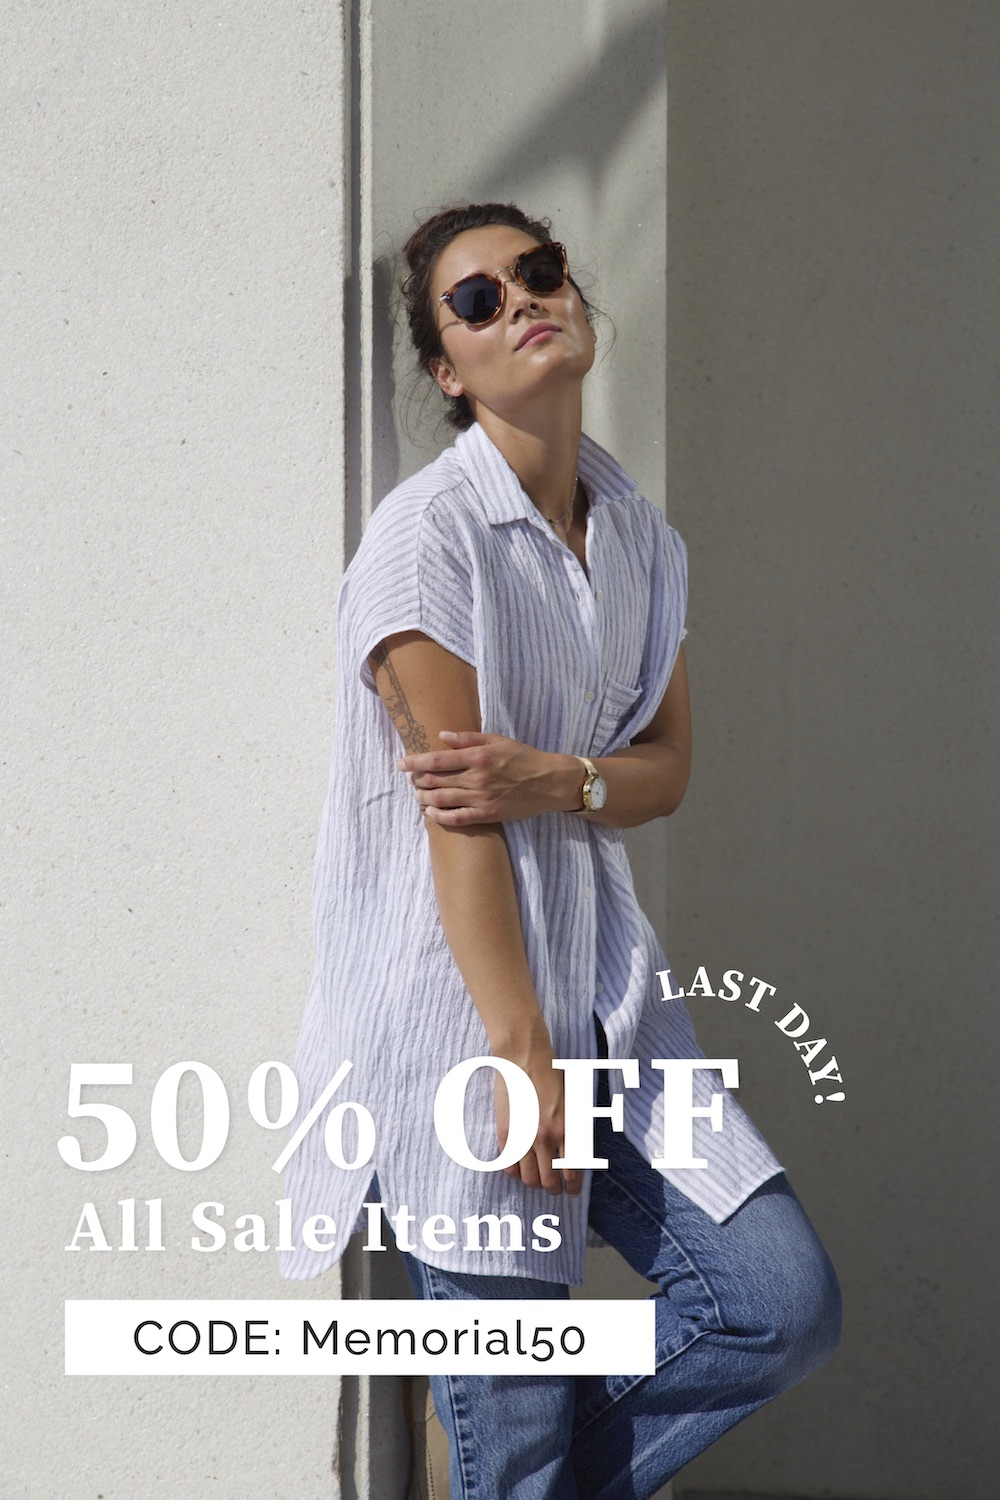 50% Off All Sale Items!